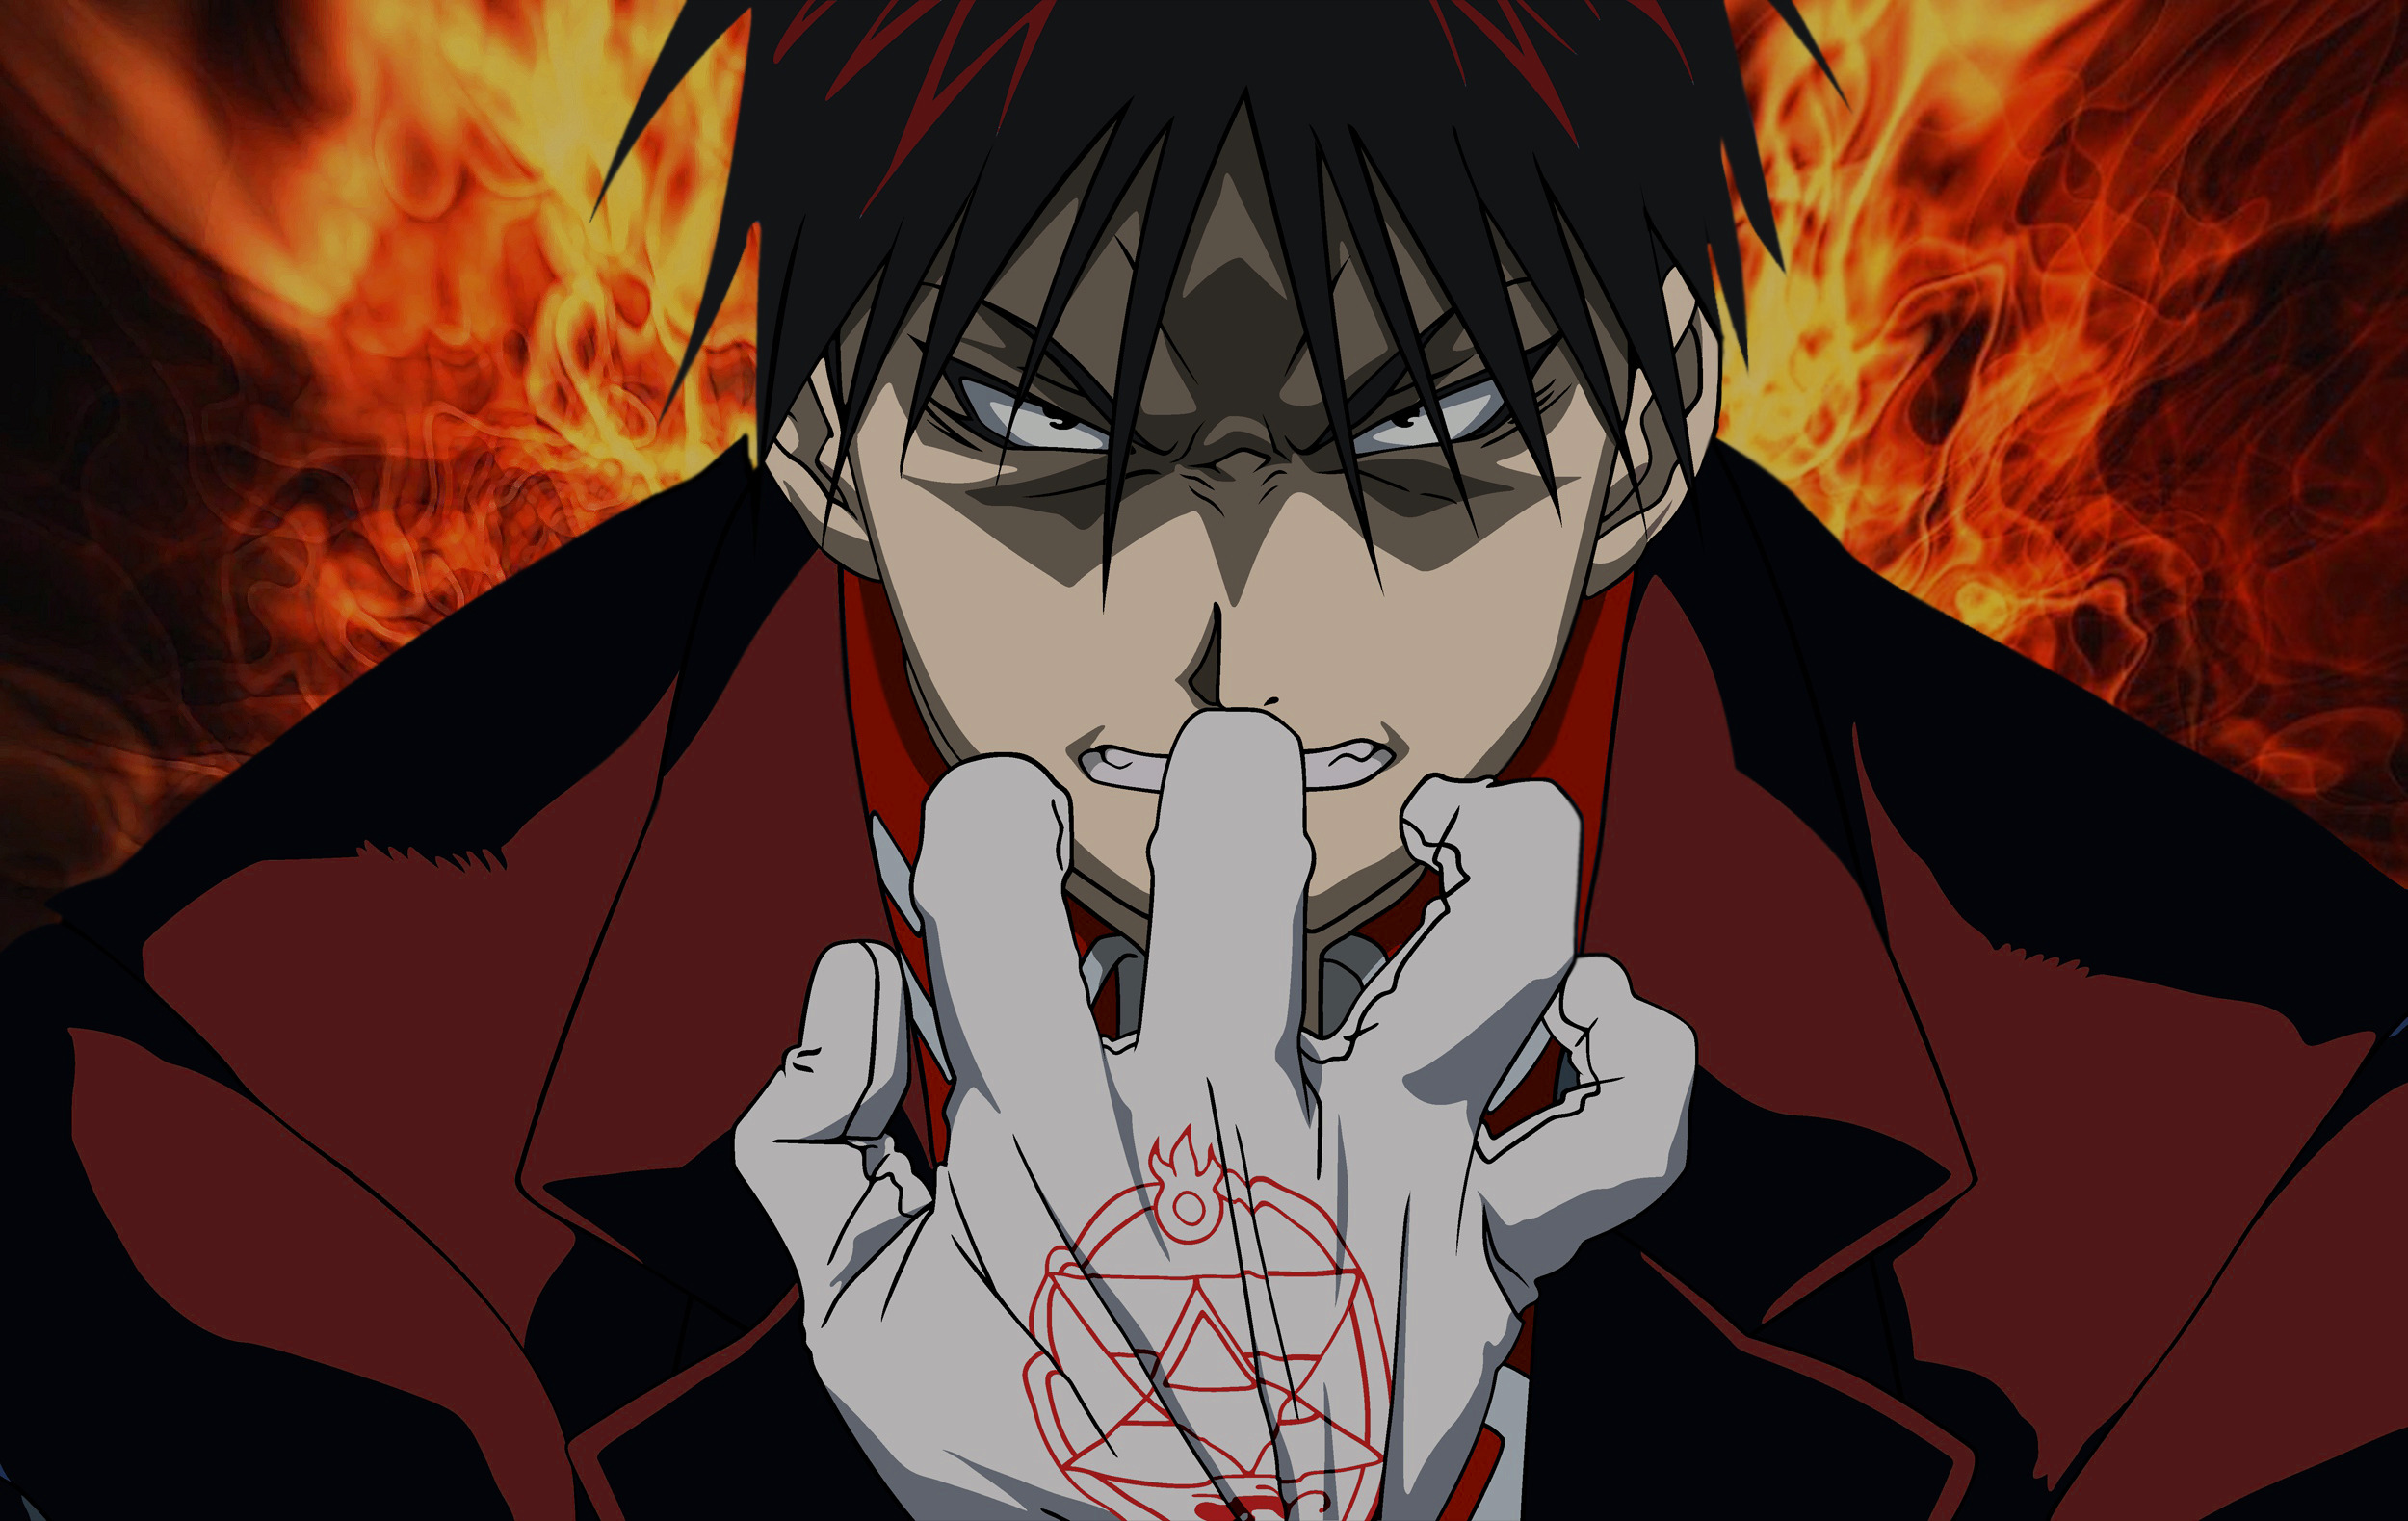 fullmetal alchemist Roy mustang HD Wallpaper